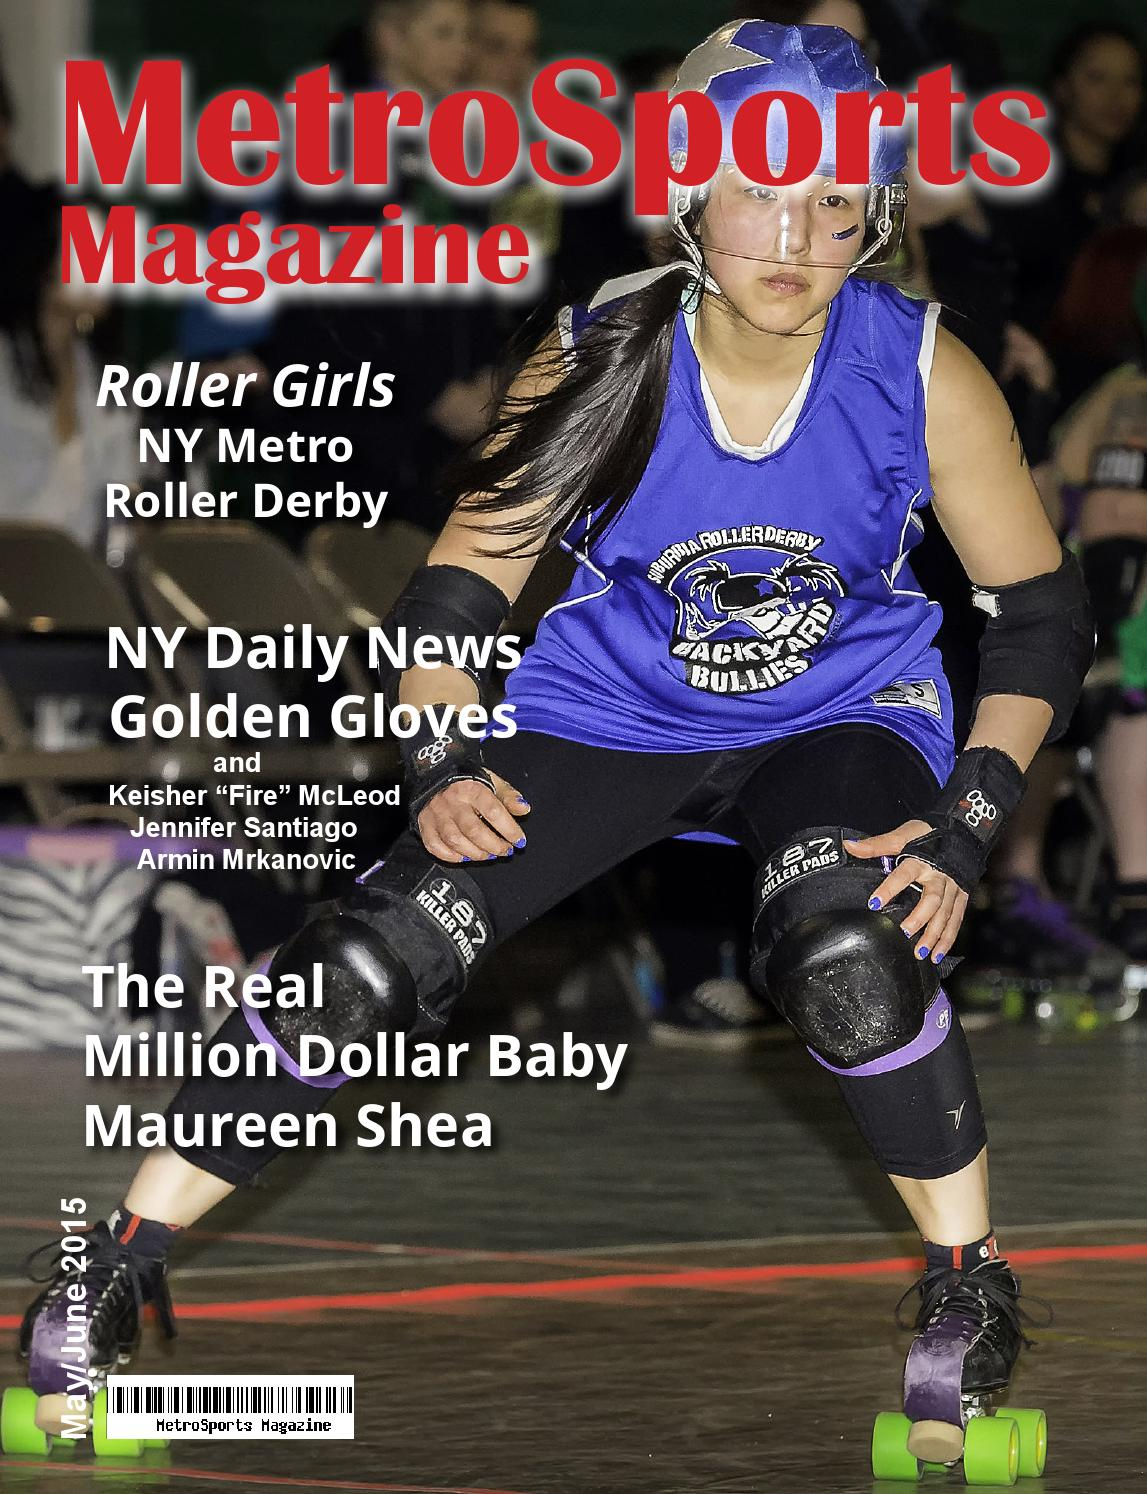 Roller skating rink westchester ny - Metrosports Magazine May June 2015 By New York Sports Photo Group Issuu